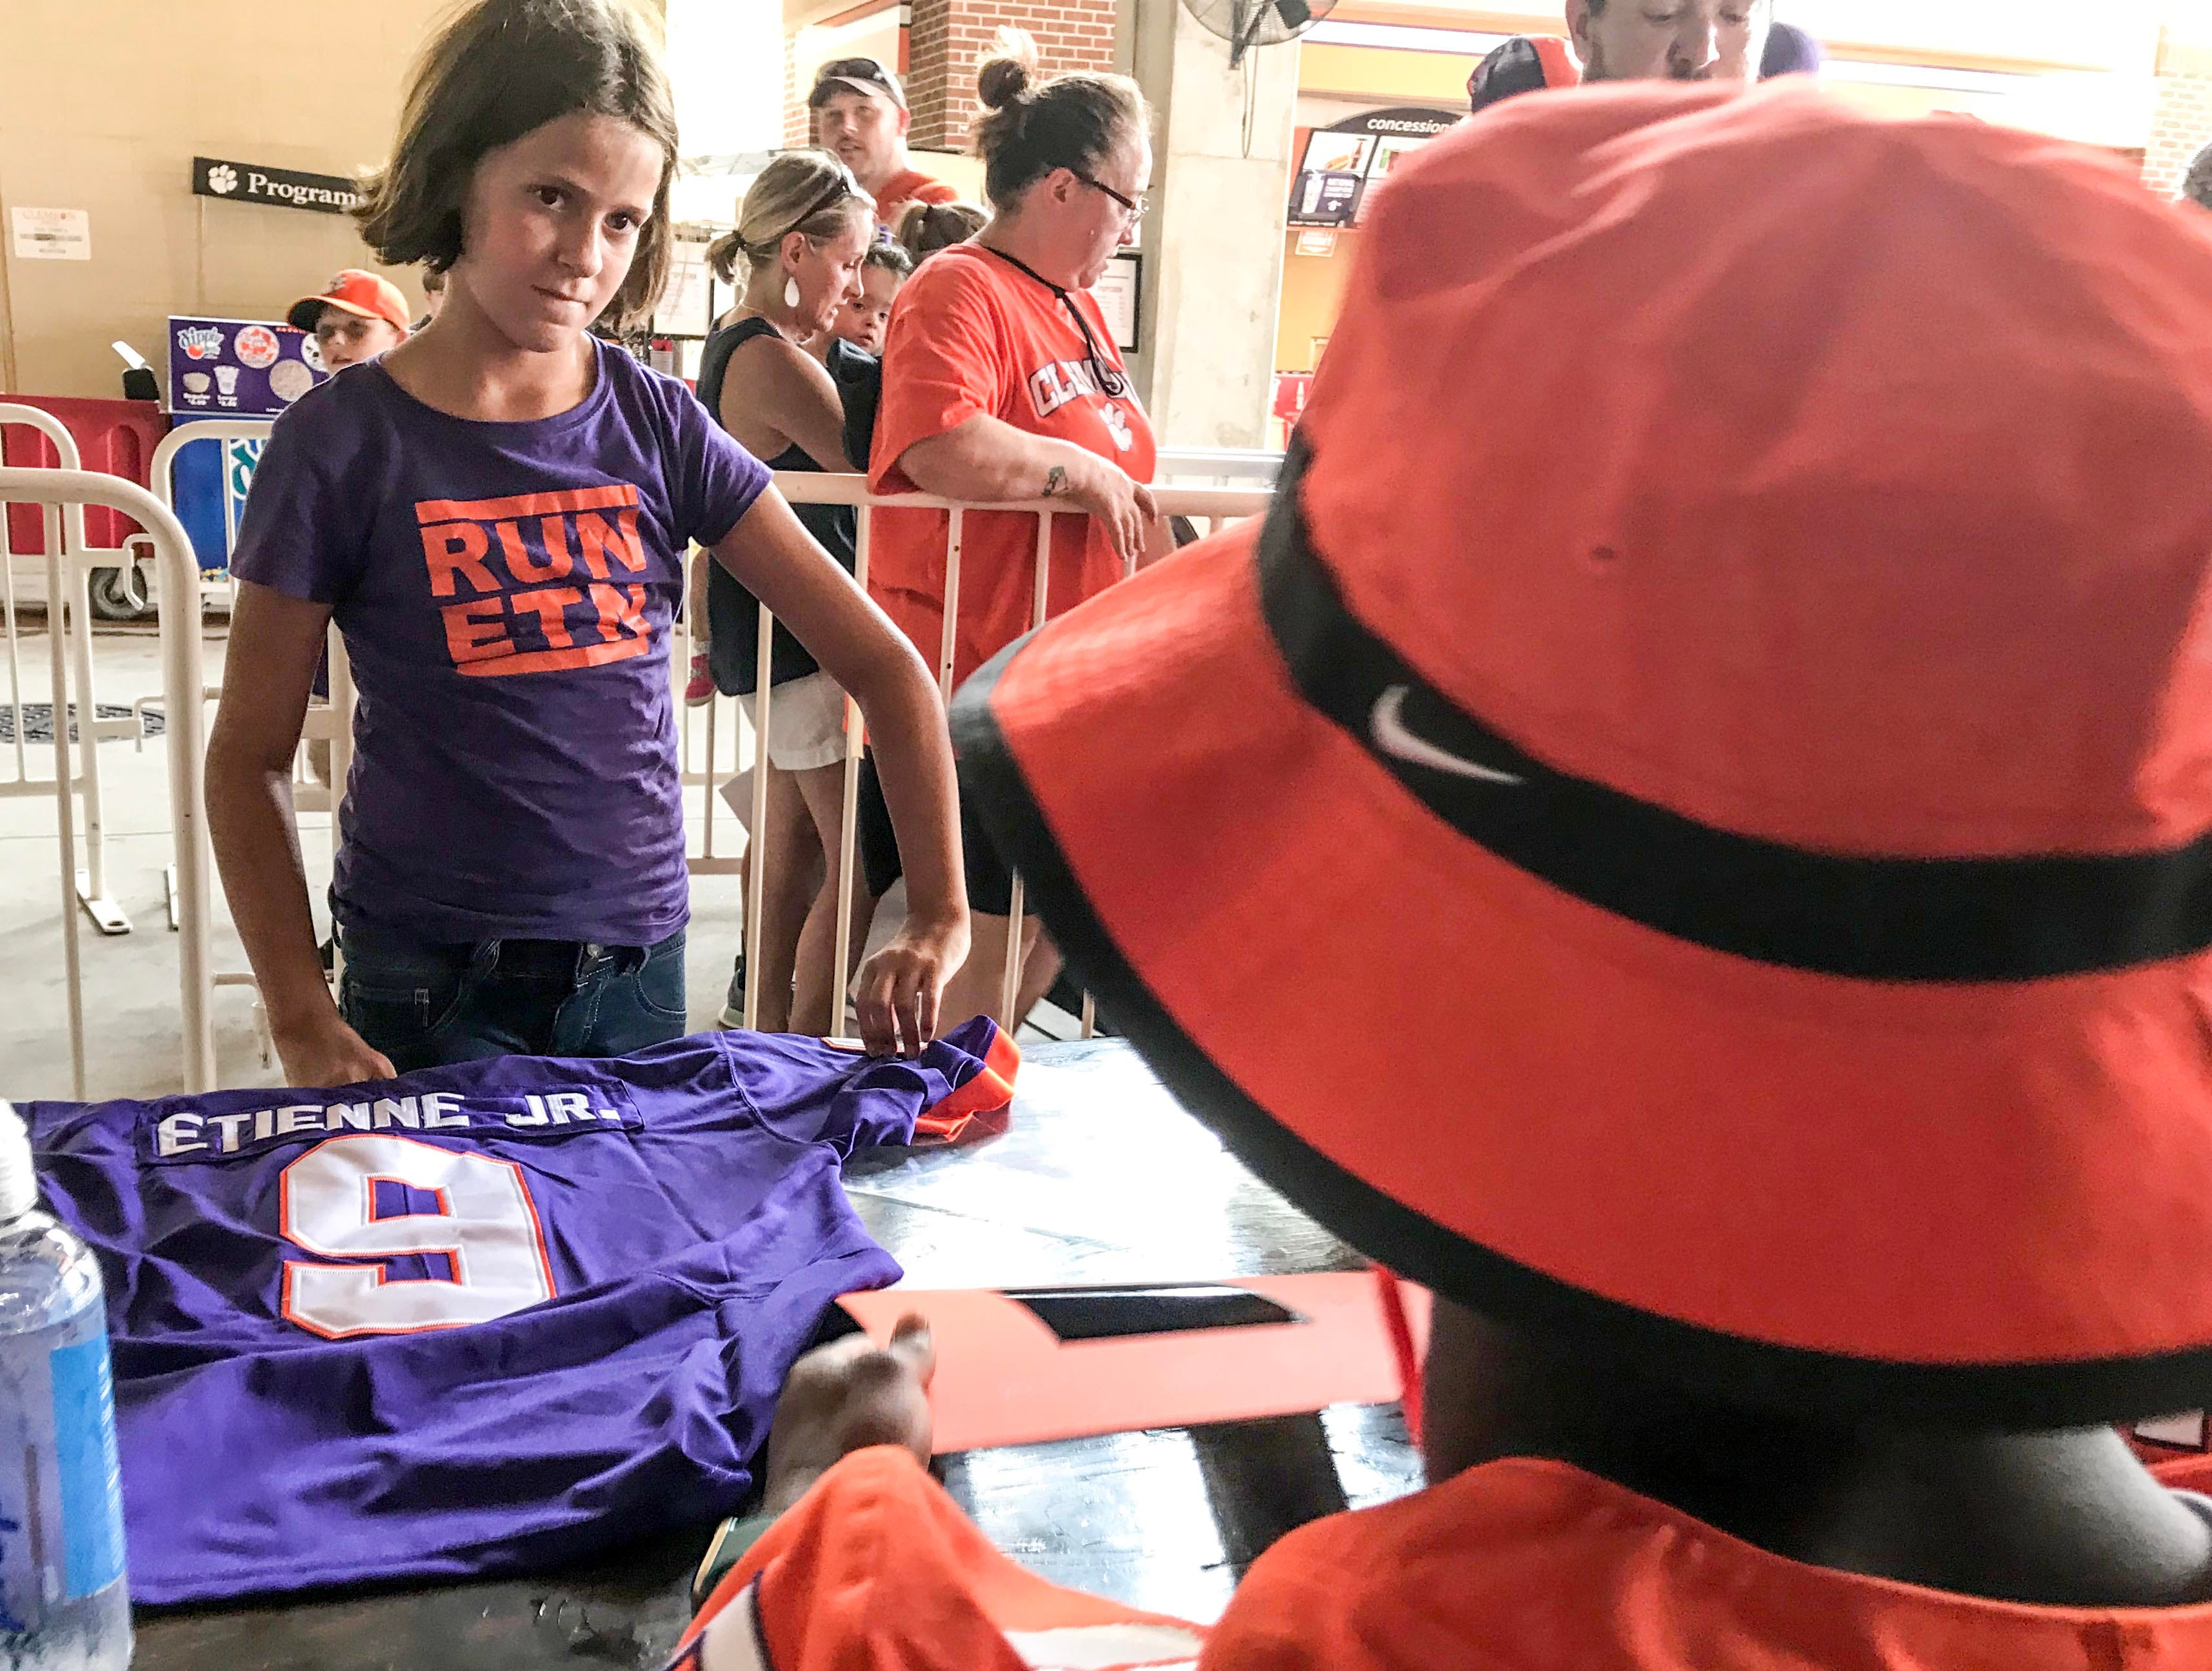 Meredith Thompson, left, 11, of Conway meets her favorite player Travis Etienne at the Clemson University football fan day in Memorial Stadium on Sunday, August 12, 2018.